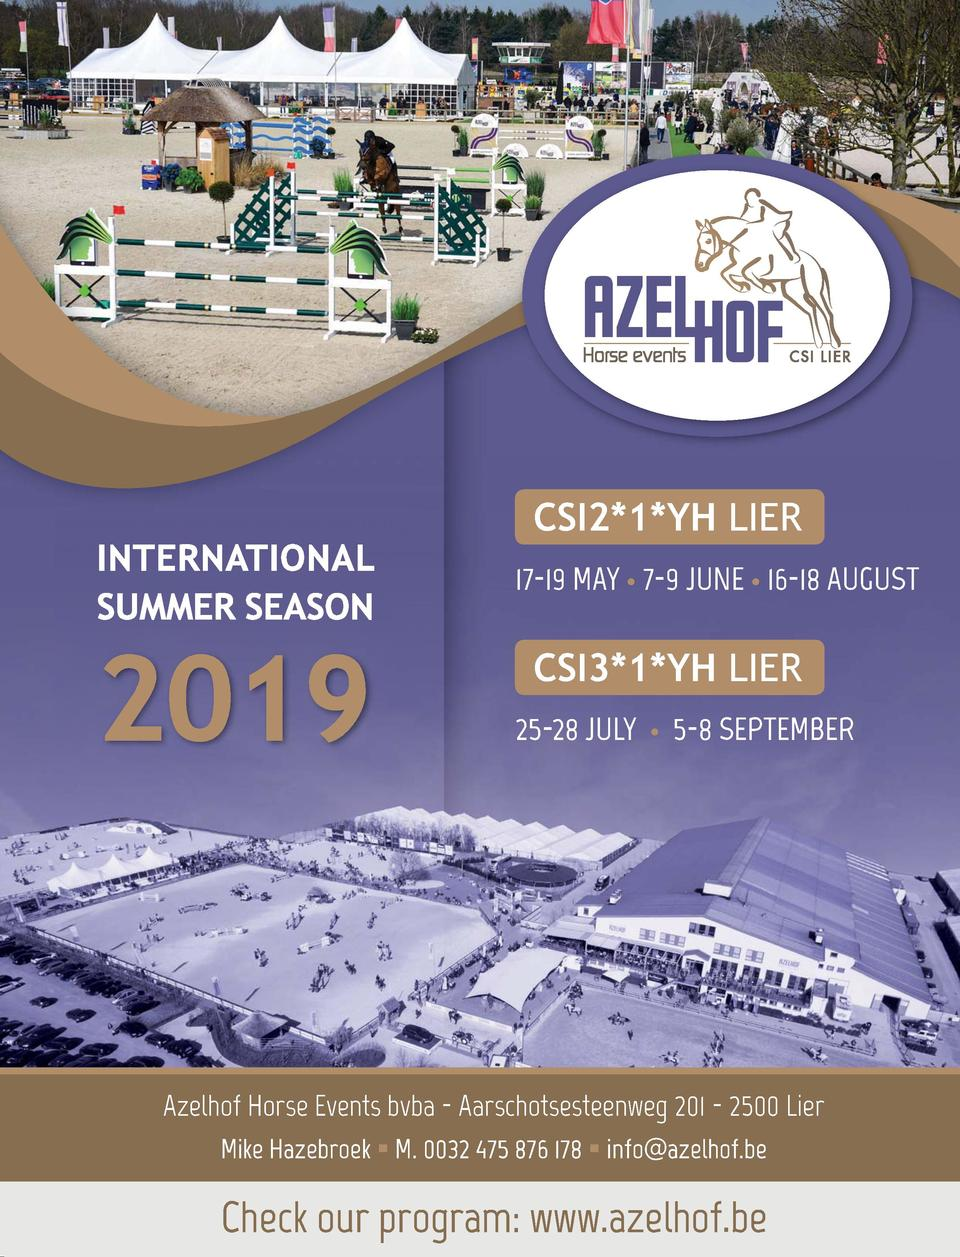 117  INTERNATIONAL SUMMER SEASON  2019  CSI2 1 YH LIER 17-19 MAY     7-9 JUNE     16-18 AUGUST  CSI3 1 YH LIER 25-28 JULY ...